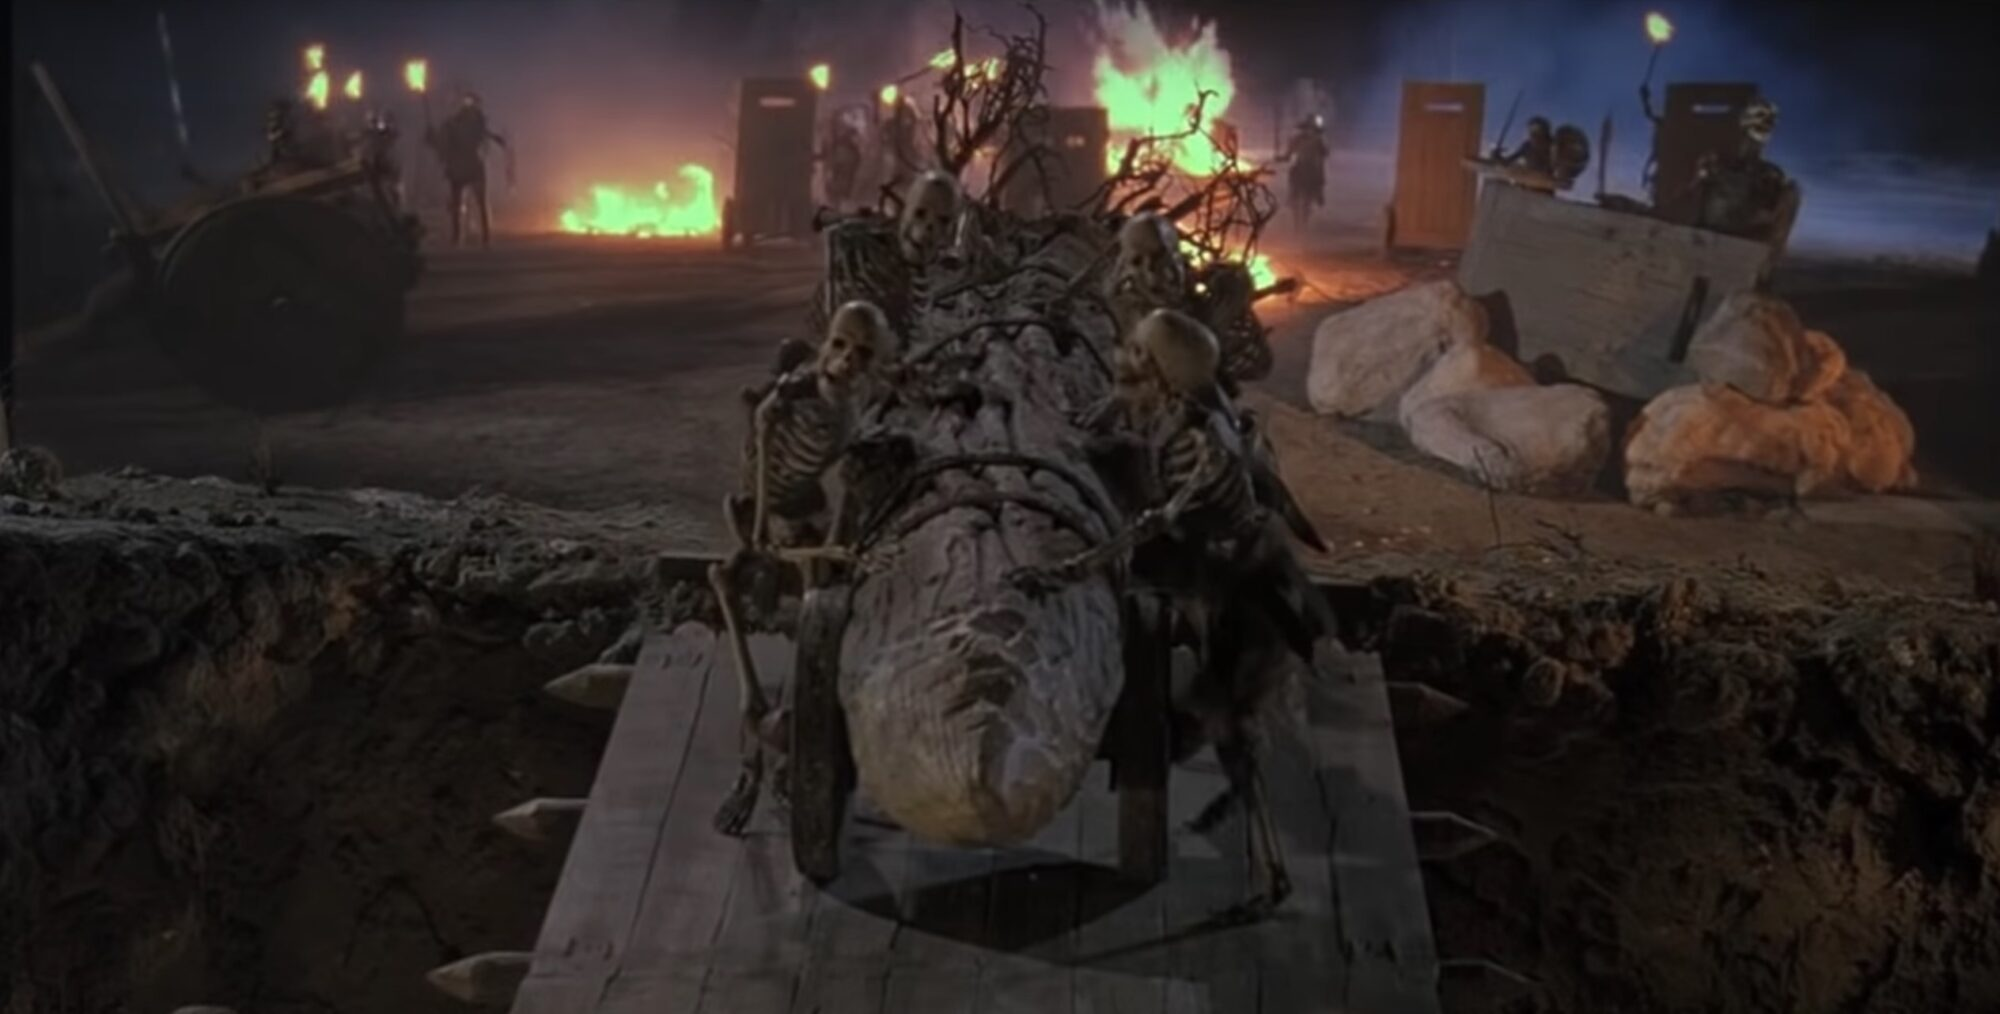 army of darkness skeletons